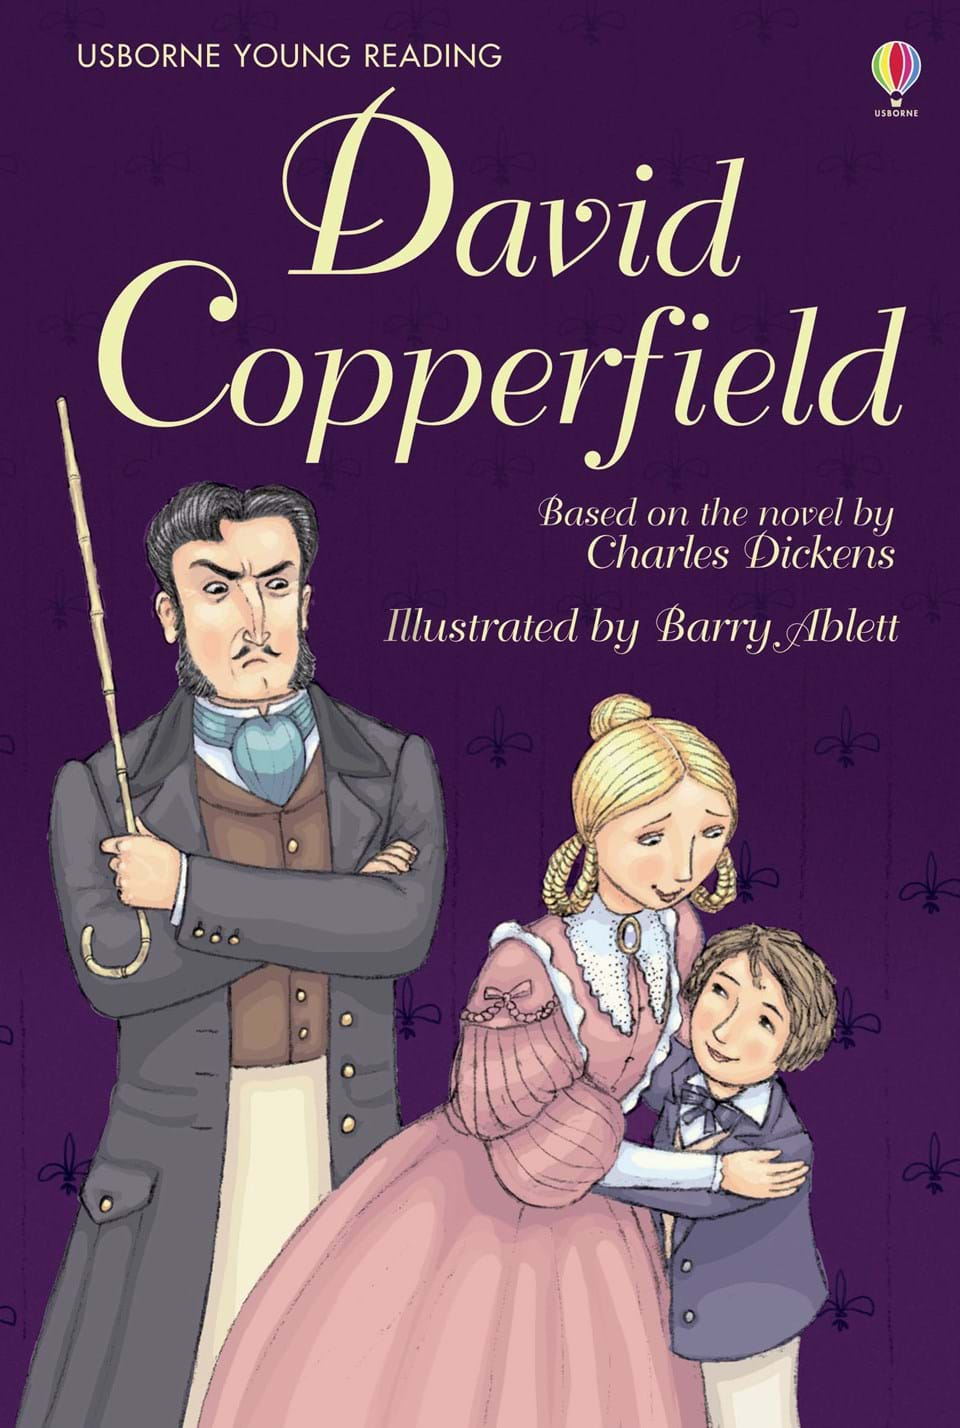 an analysis of david copperfield by charles dickens David copperfield by charles dickens - chapter 1 summary and analysis.